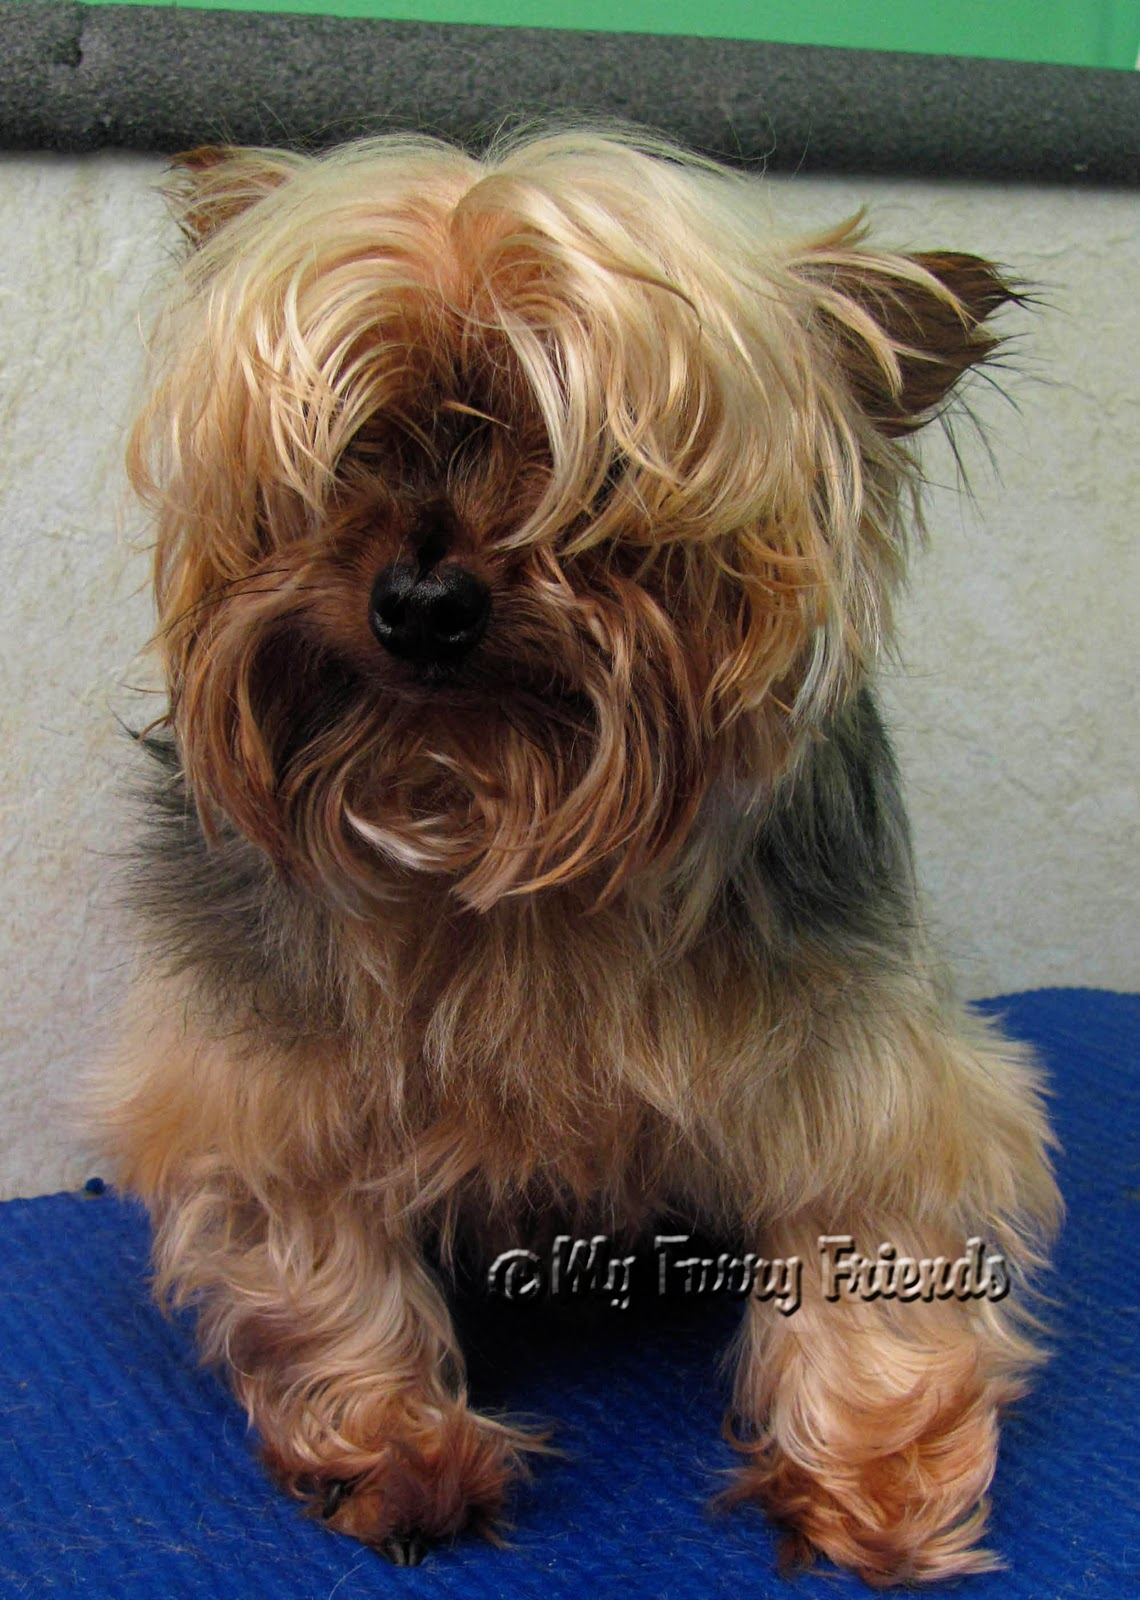 Pet Grooming The Good The Bad The Furry Yorkies